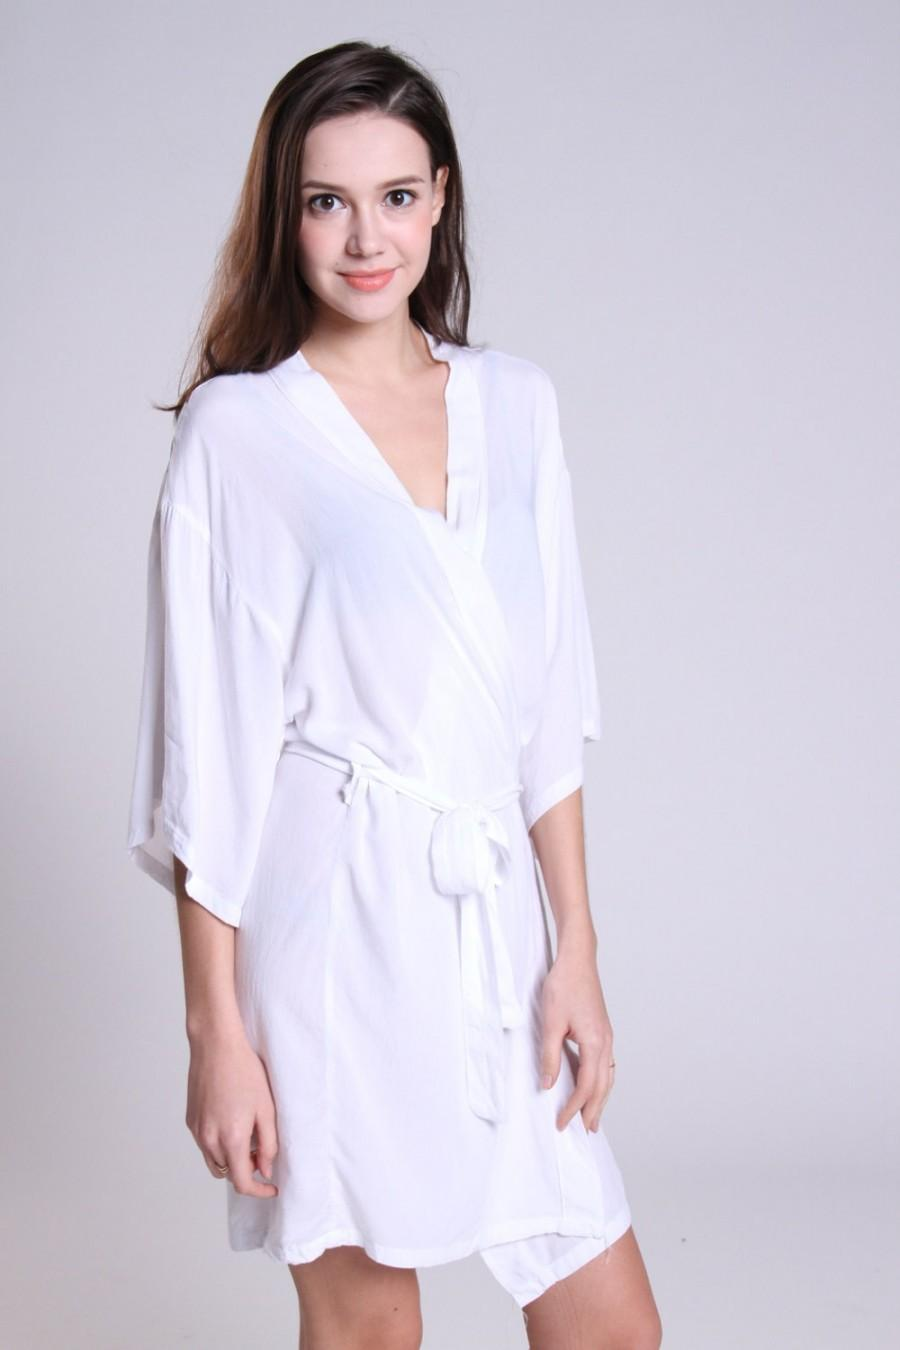 Cotton Pajamas & Robes: imaginary-7mbh1j.cf - Your Online Pajamas & Robes Store! Get 5% in rewards with Club O! Coupon Activated! Skip to main content FREE Shipping & Easy Returns* Search. Earn Rewards with Overstock. Women's Organic Cotton White and Rose Stripe Bath Robe.